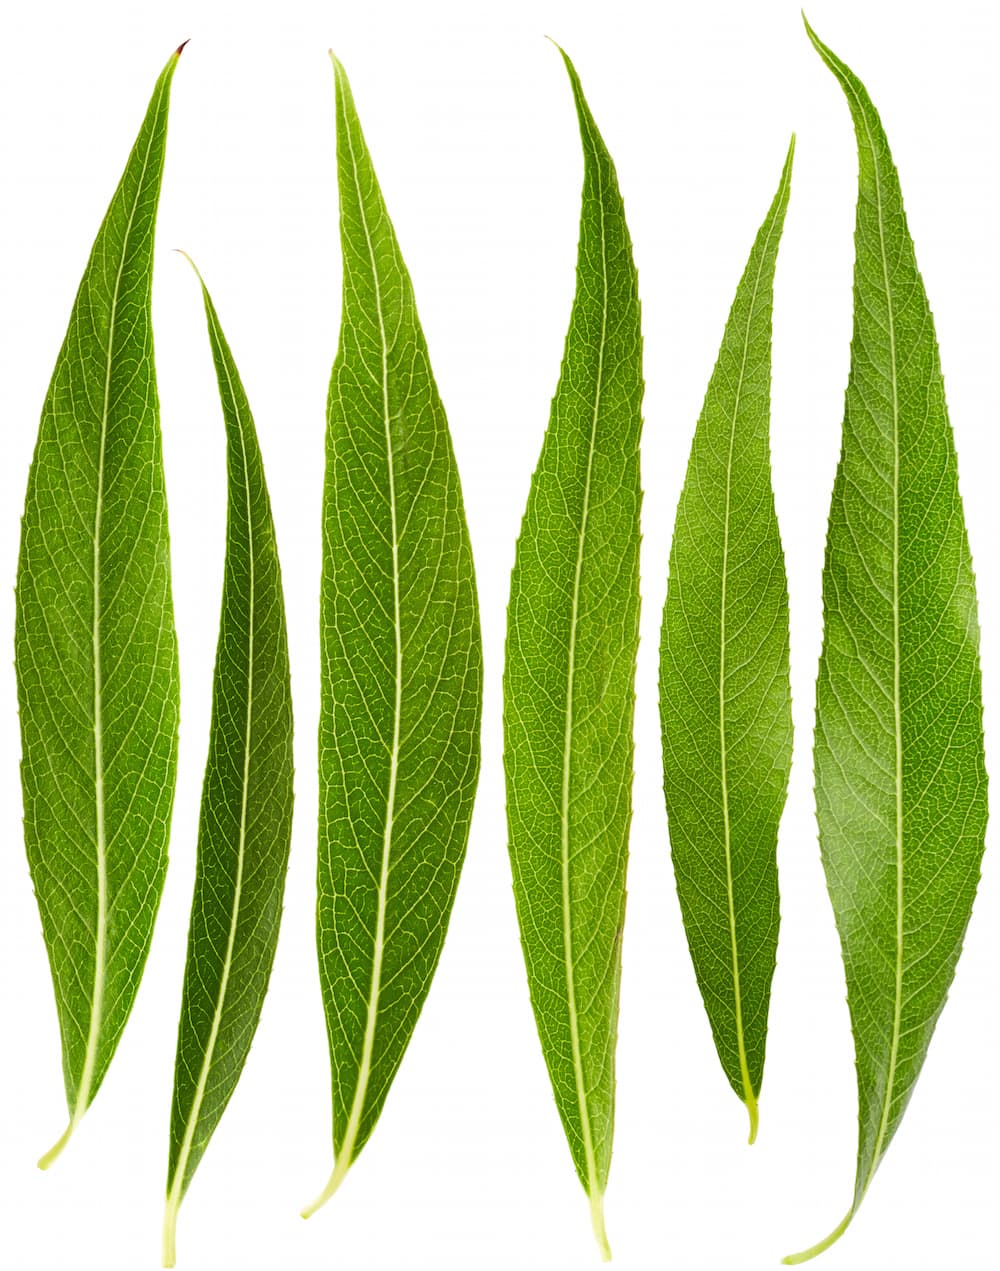 willow-leaves-ID 57685841 © Nikmerkulov | Dreamstime.com.jpg